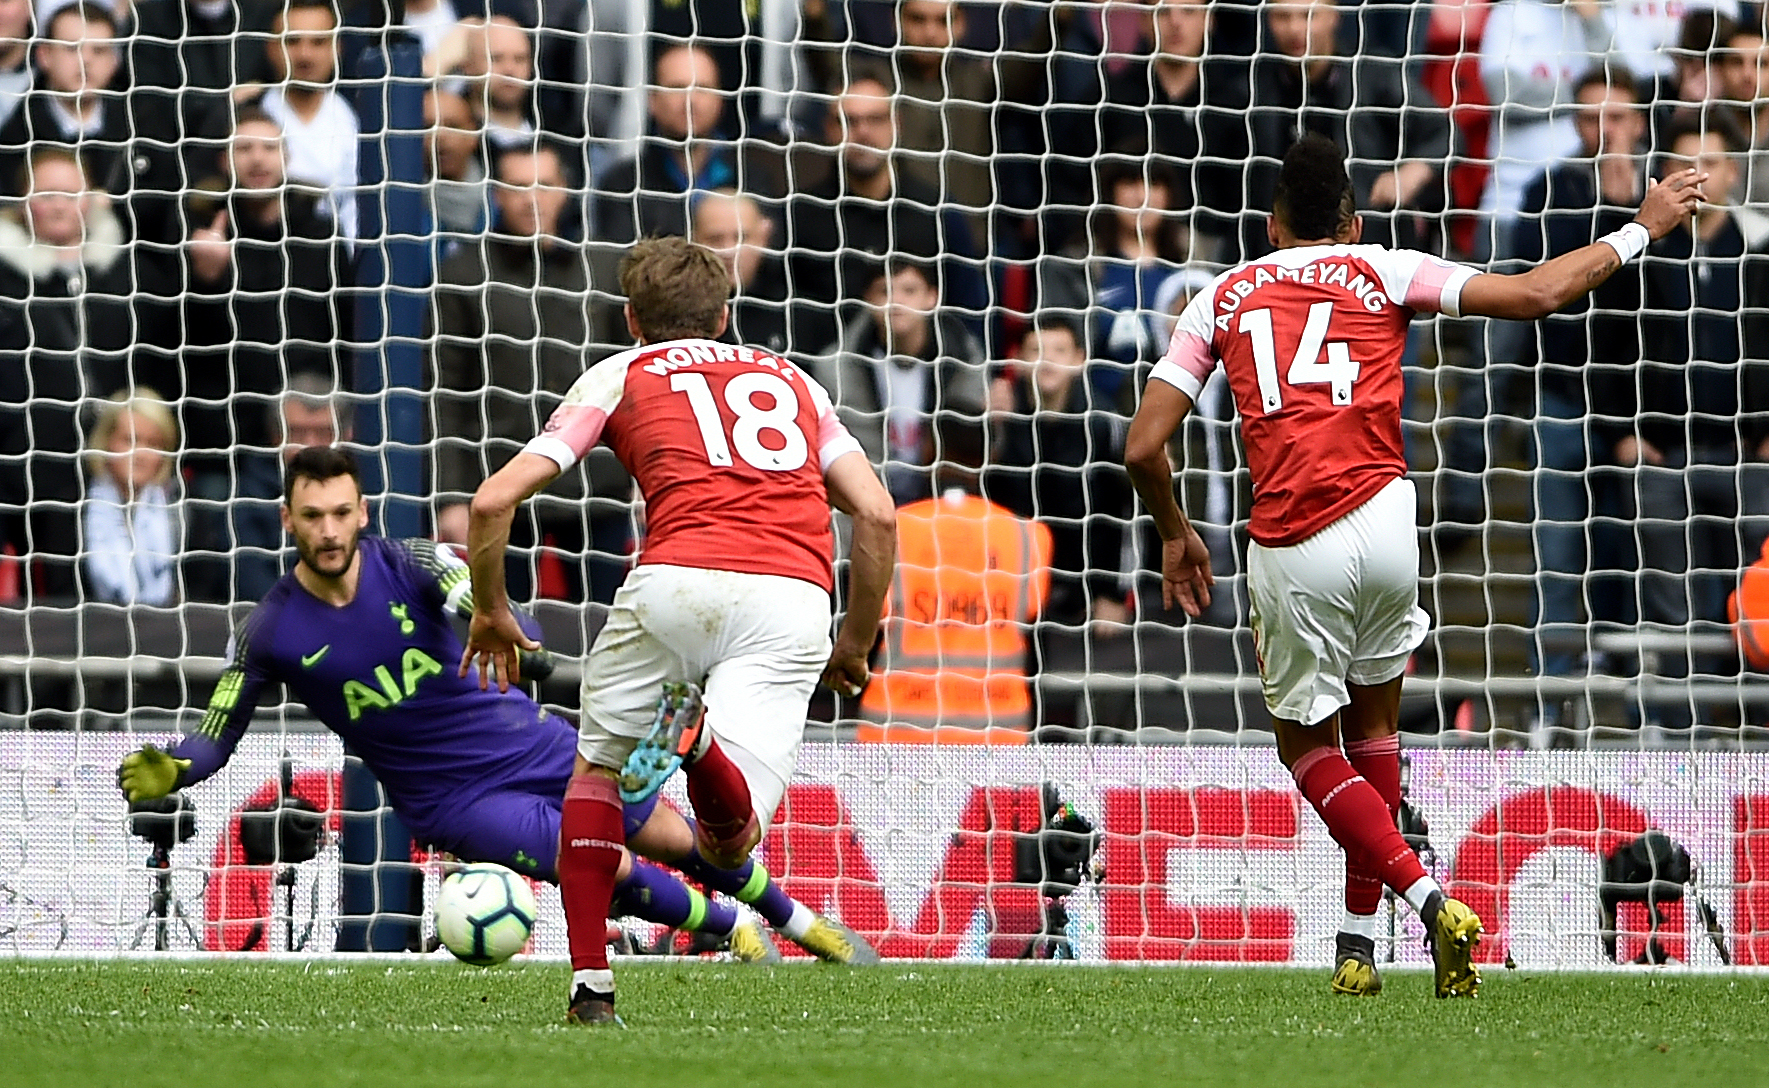 The last action of Spurs at Wembley could be Hugo Lloris' penalty save. Image: PA Images